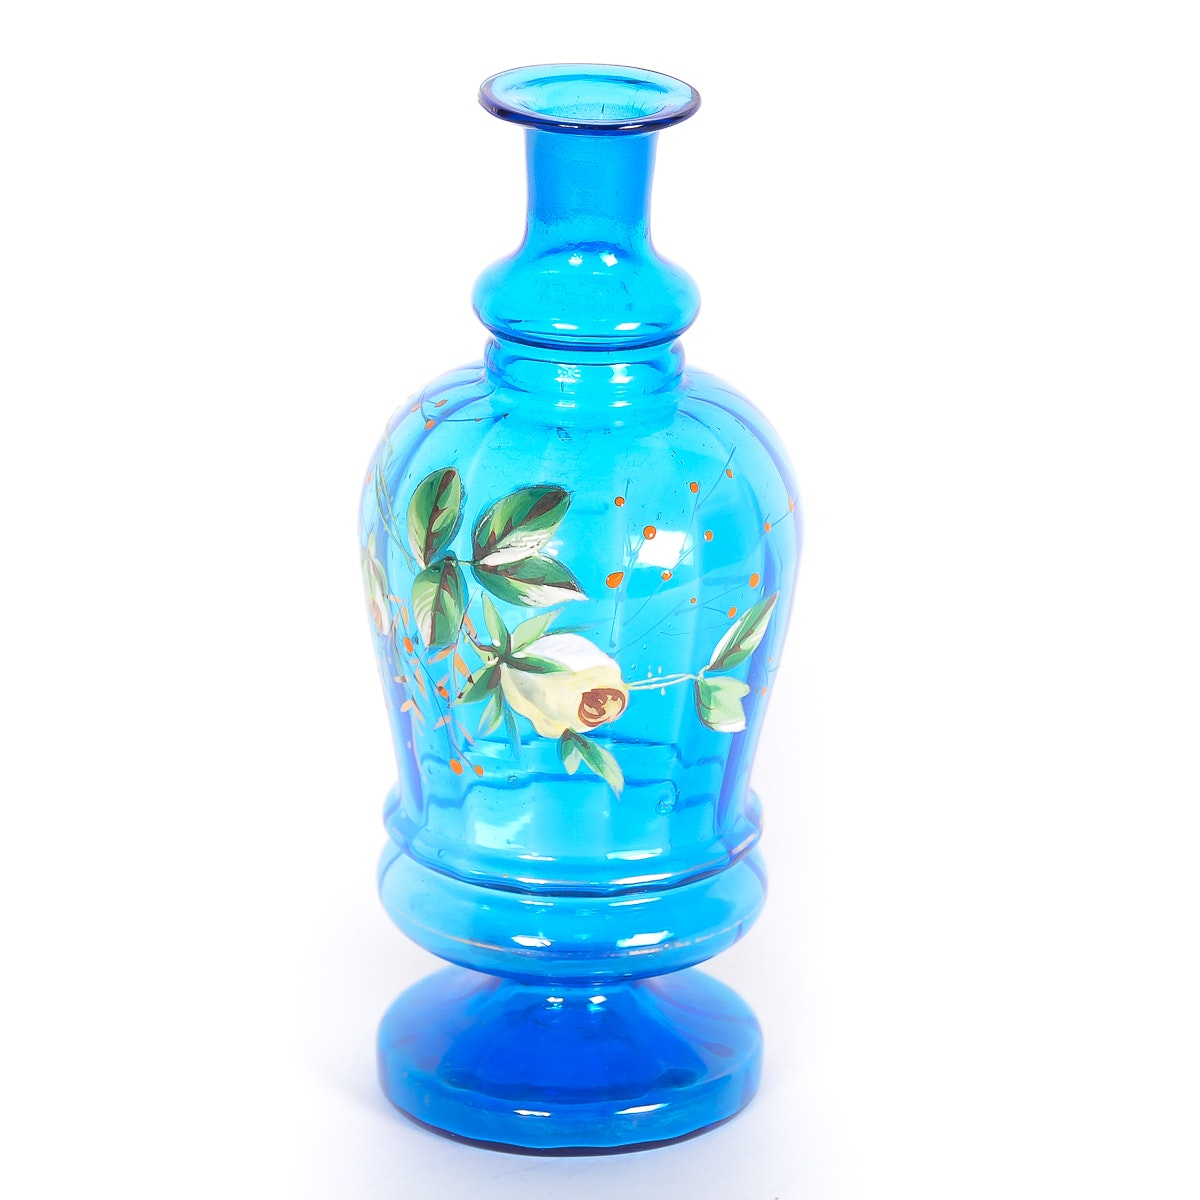 Antique Hand-Painted Blue Glass Vase